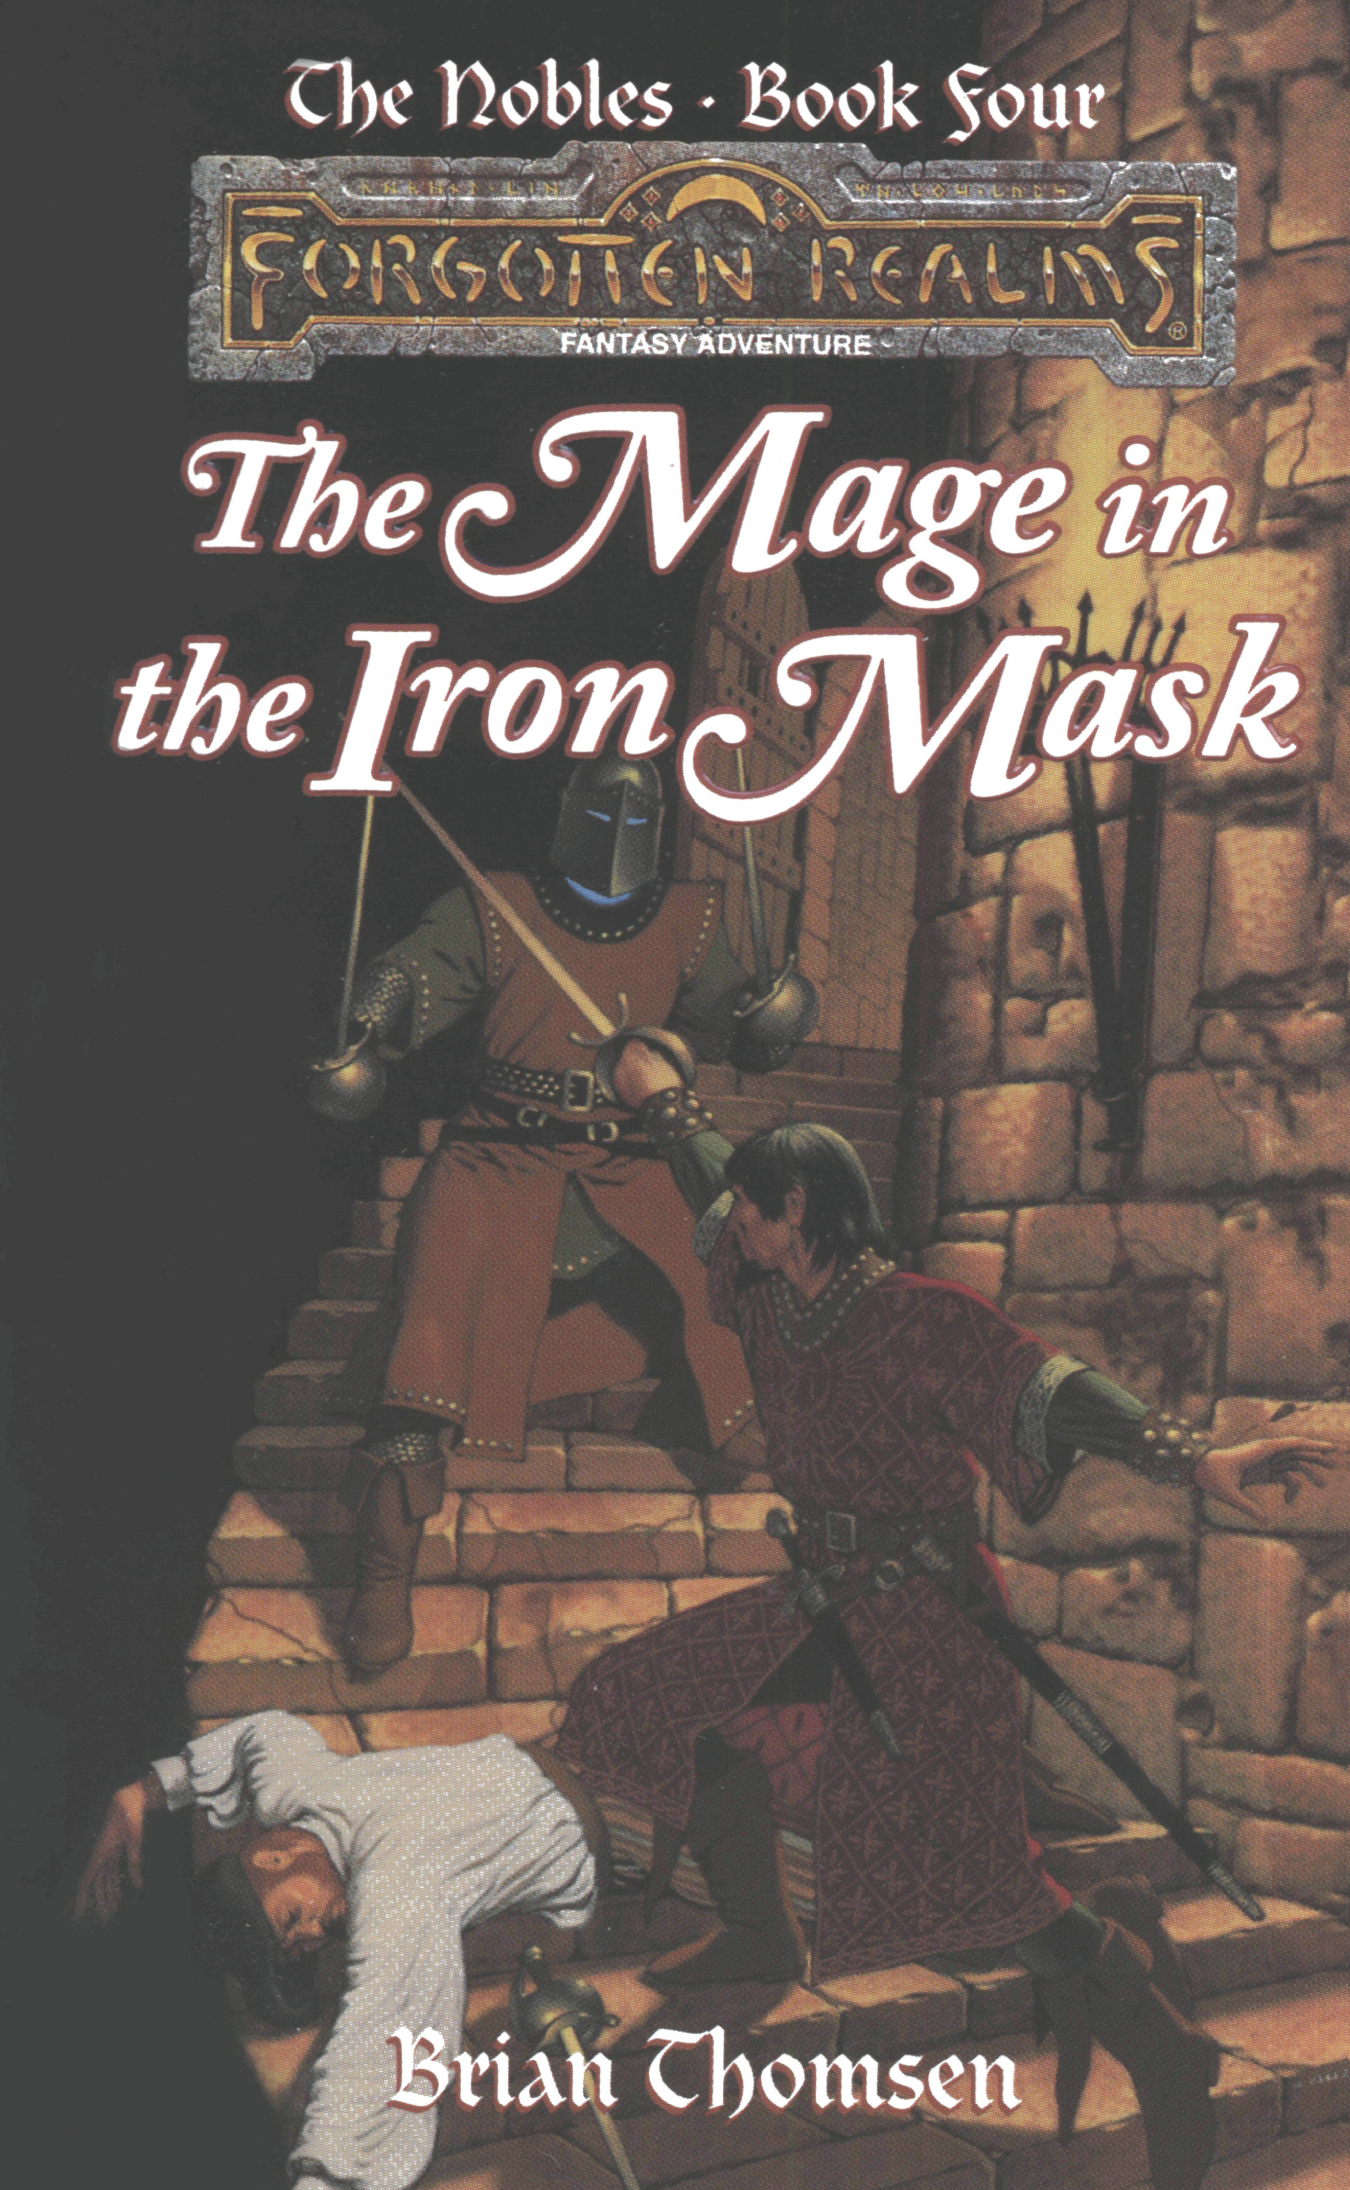 File:TheMageintheIronMask-cover.jpeg